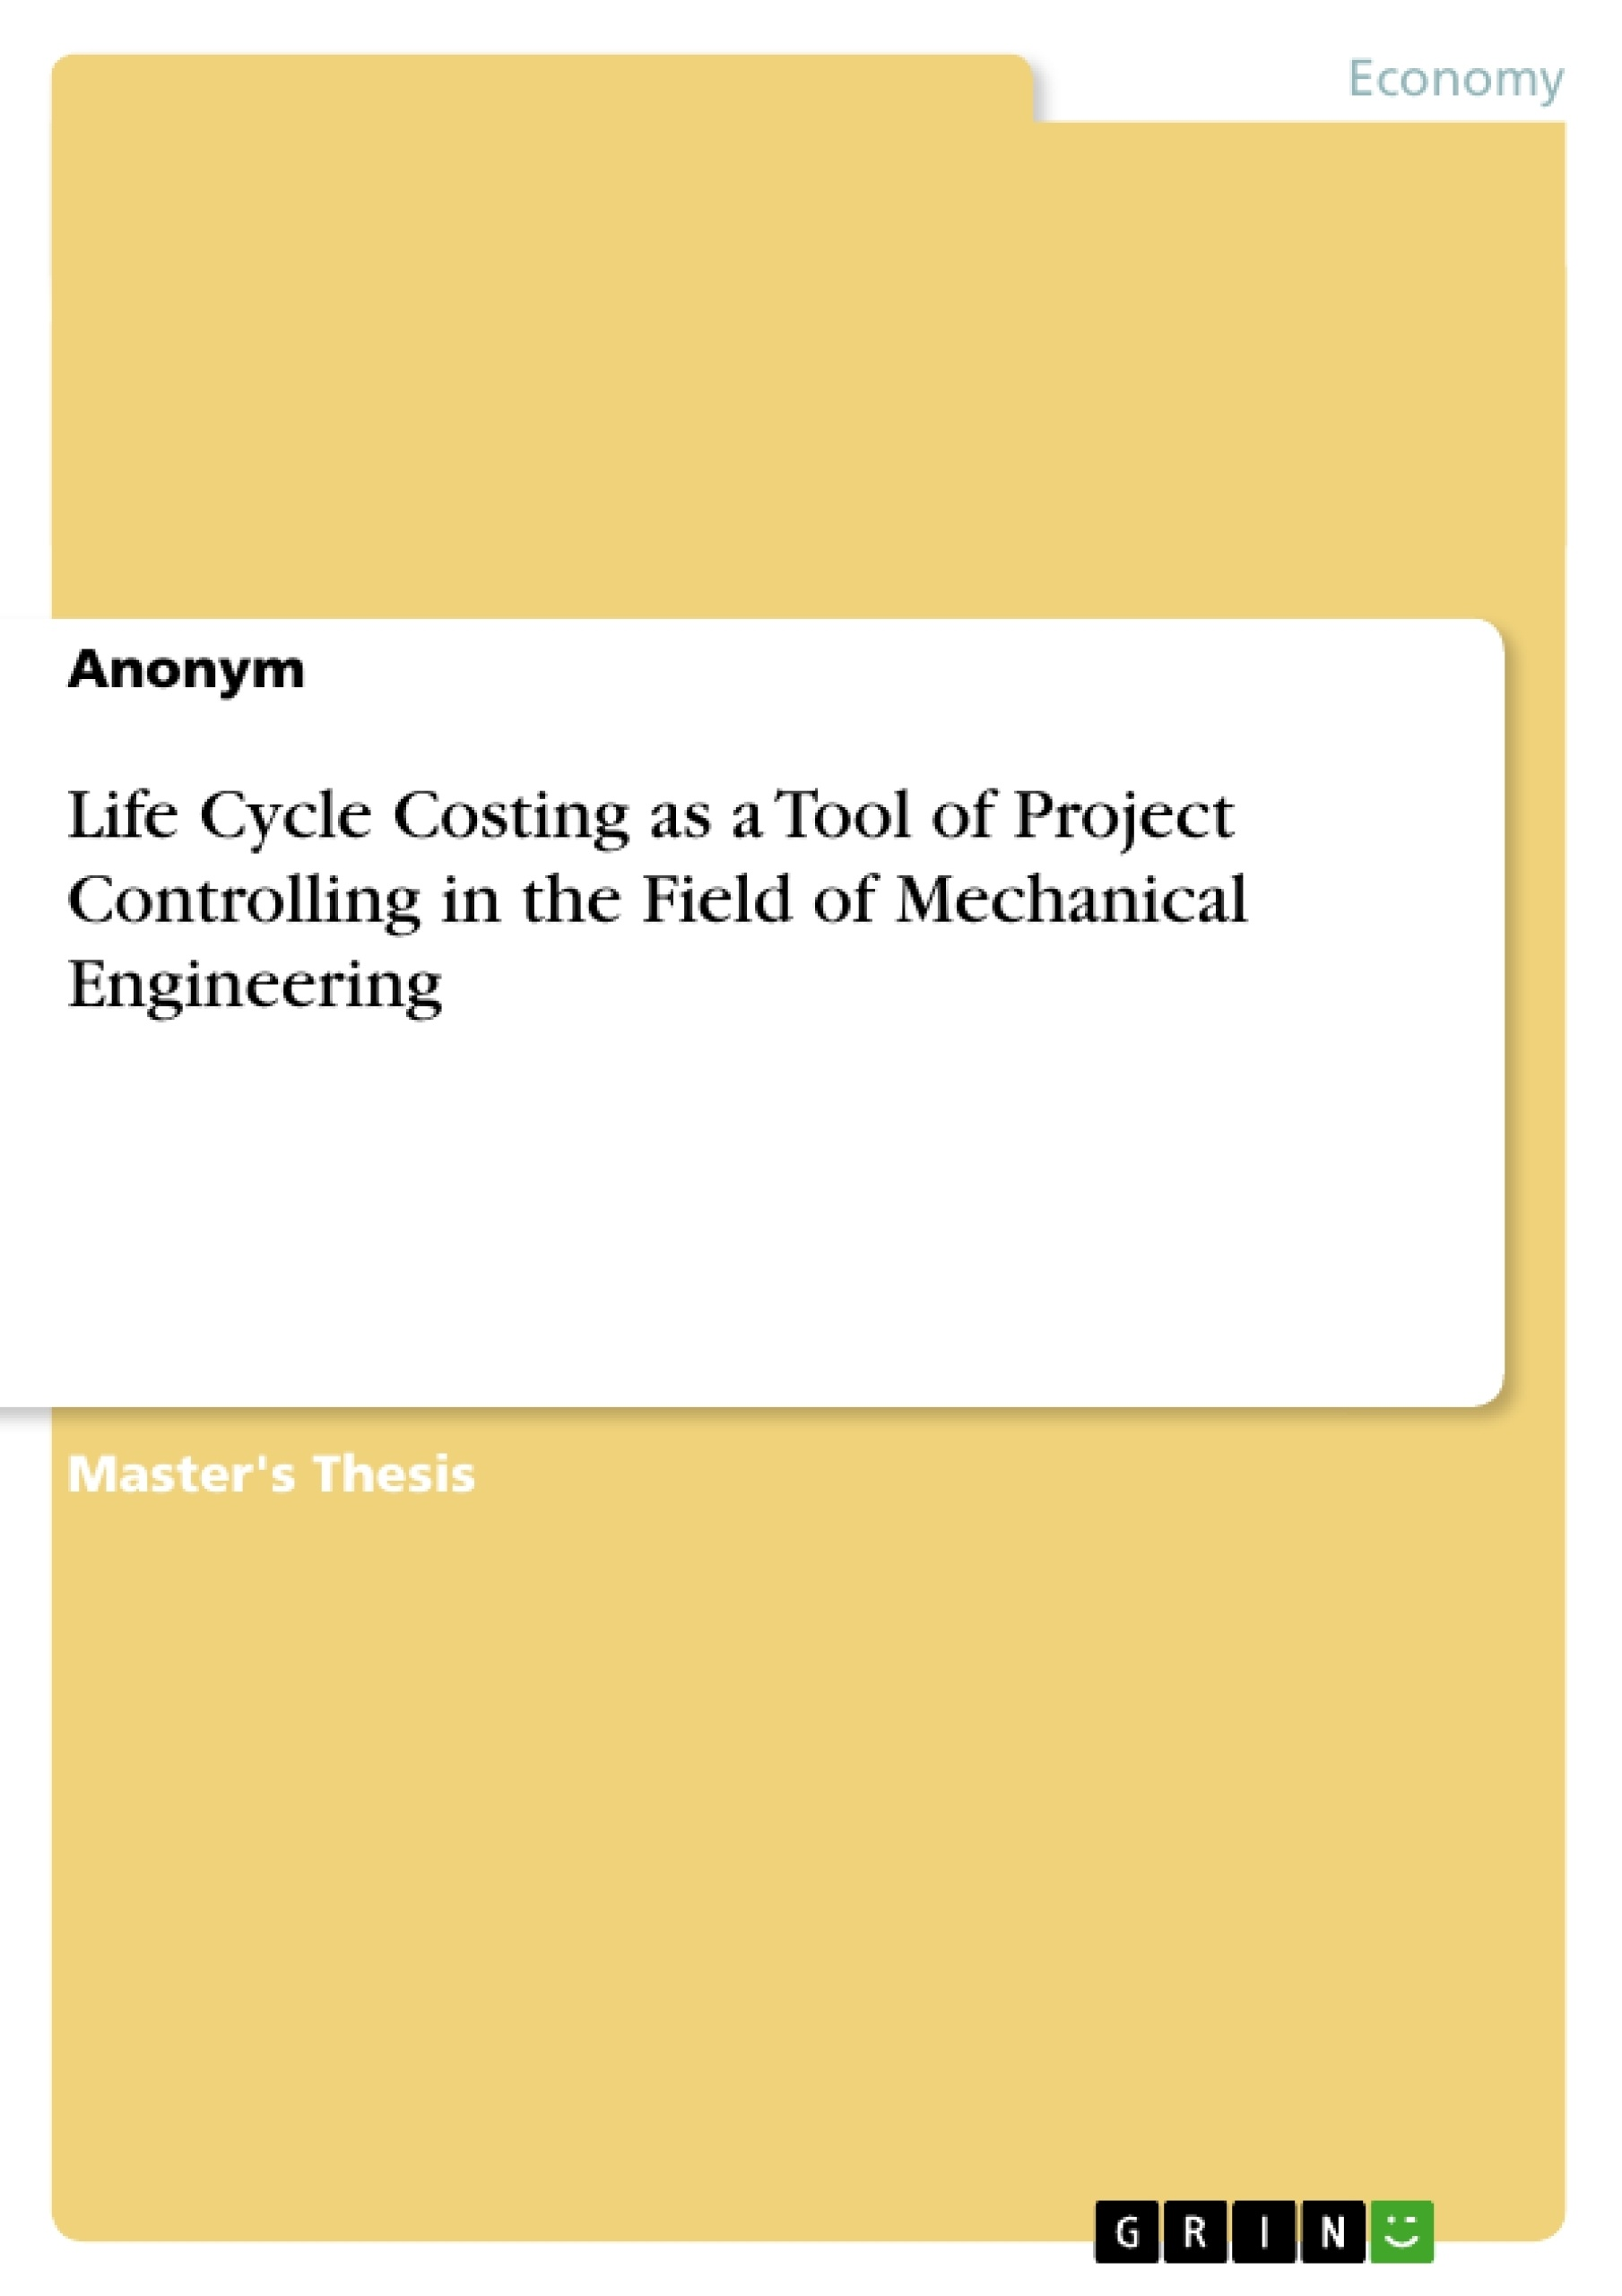 Title: Life Cycle Costing as a Tool of Project Controlling in the Field of Mechanical Engineering